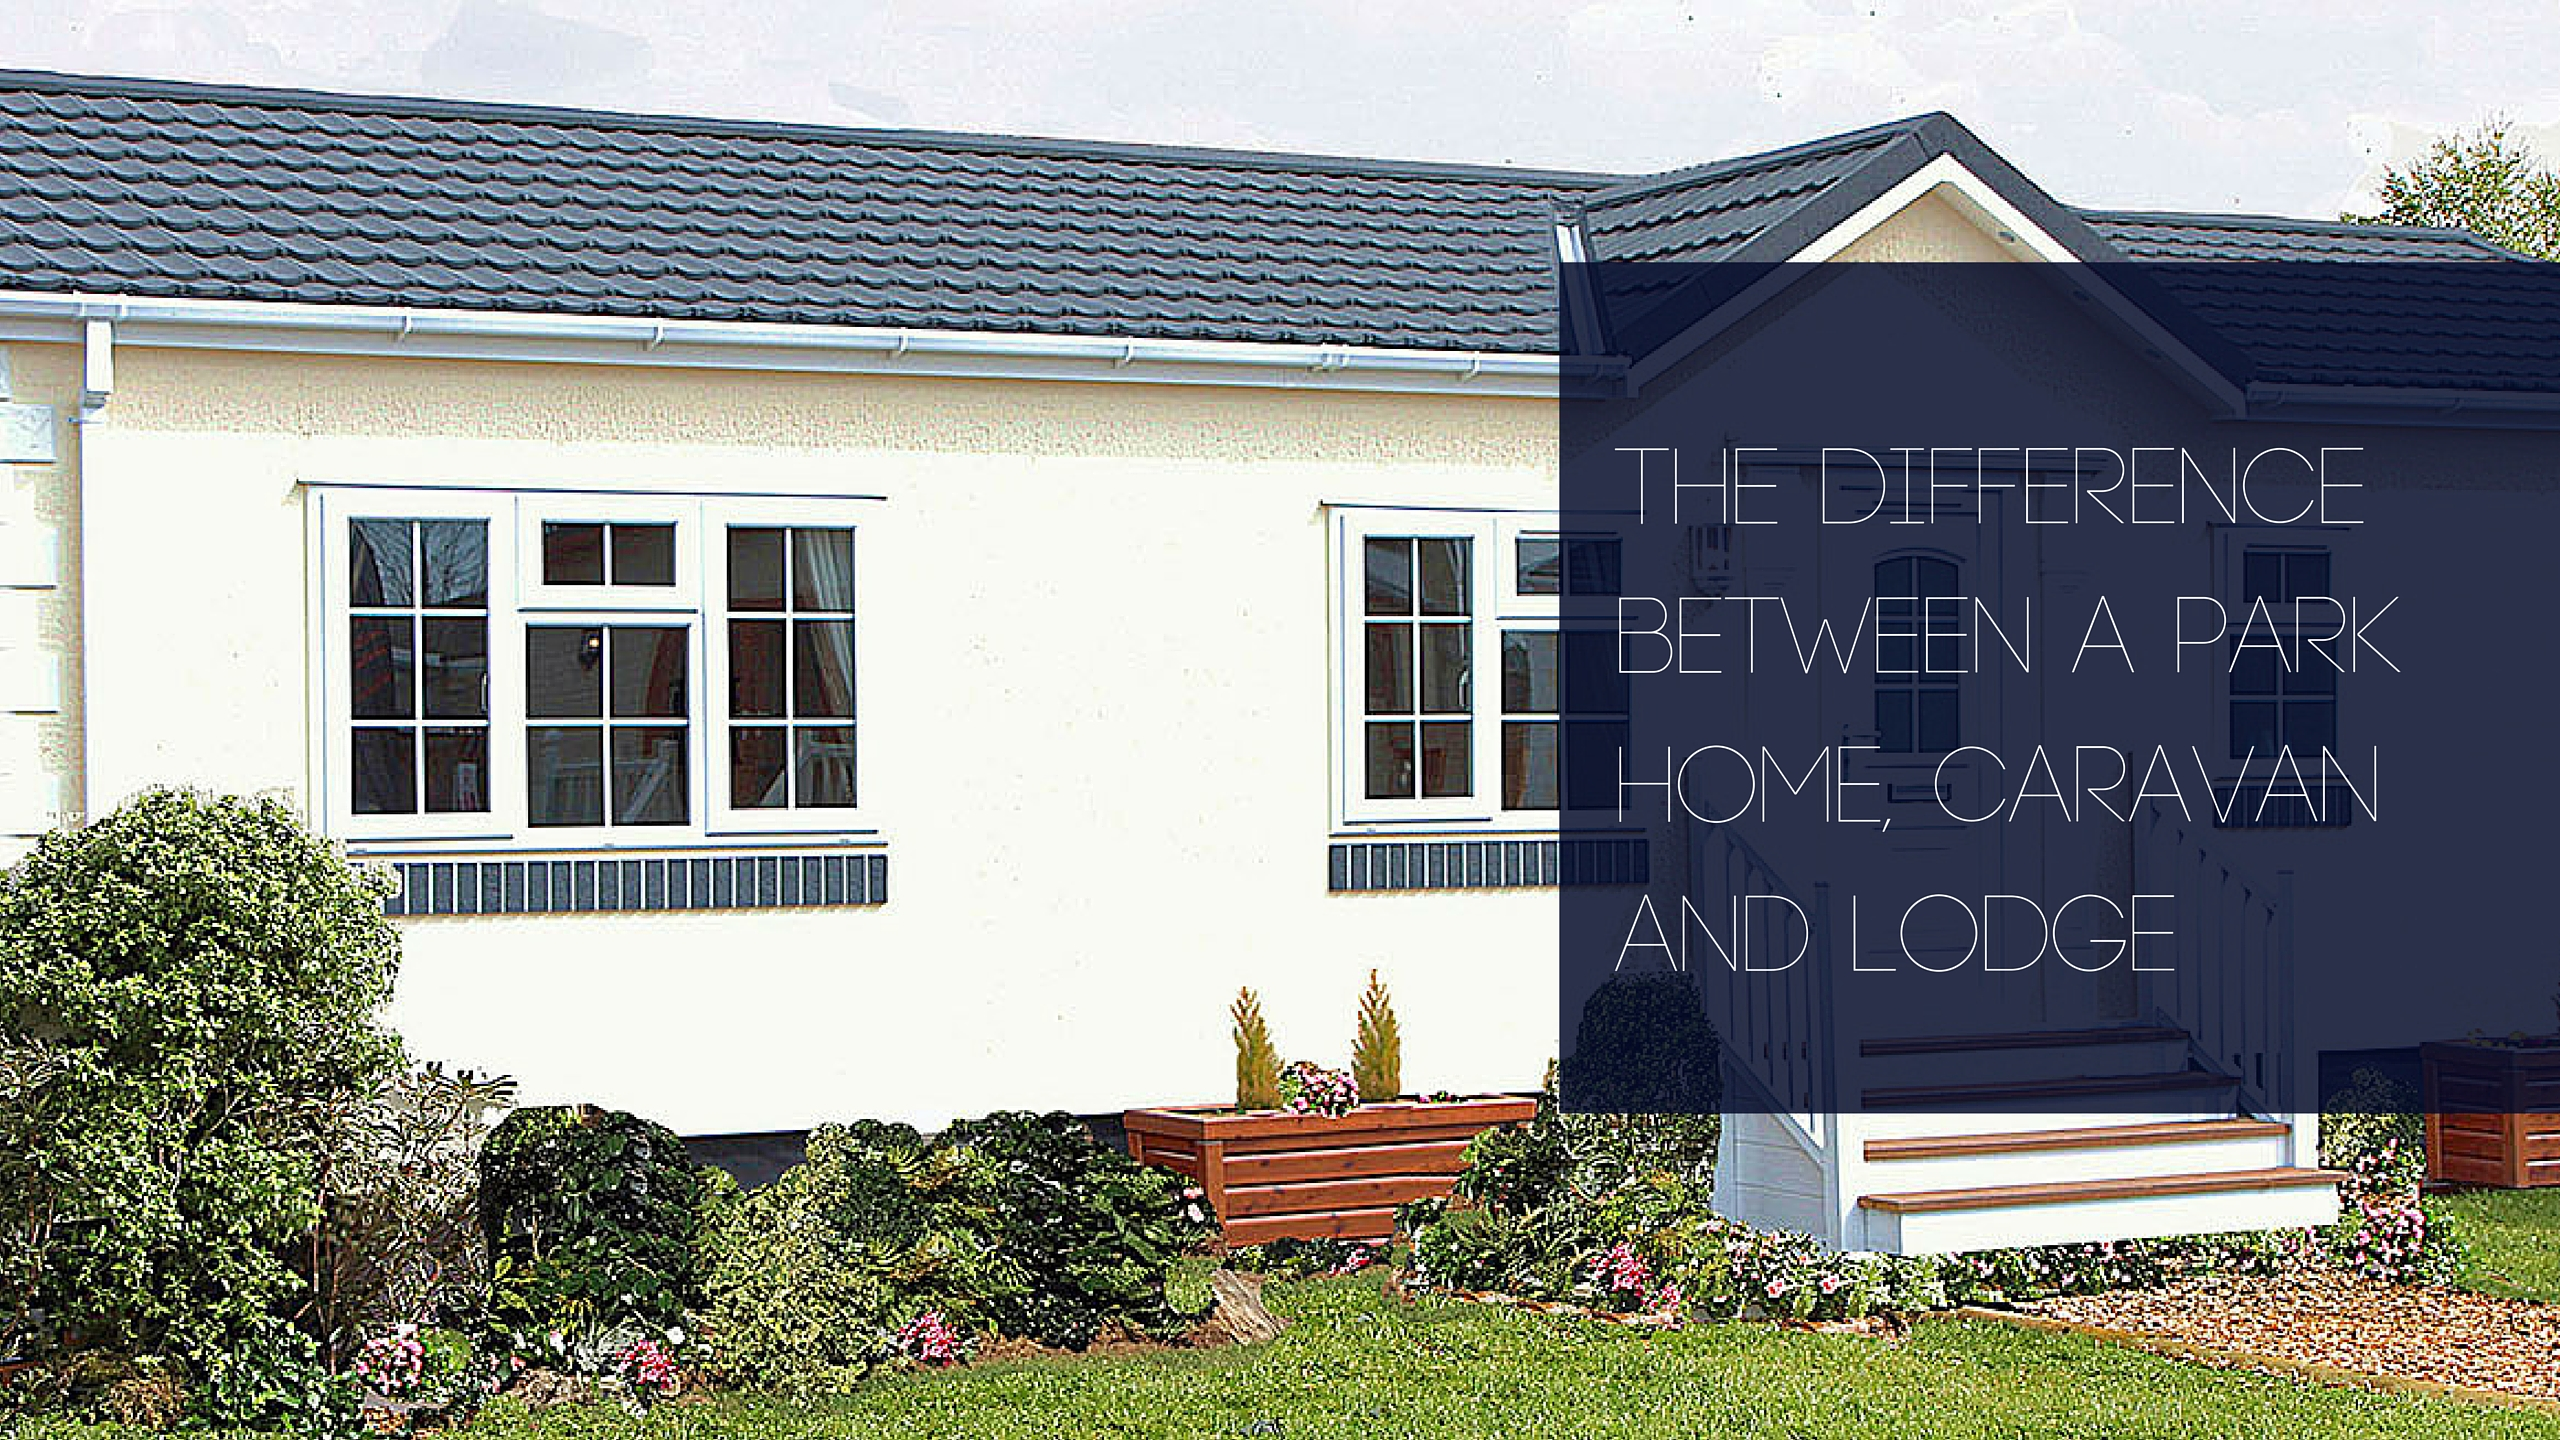 The Difference Between A Park Home Caravan And Lodge